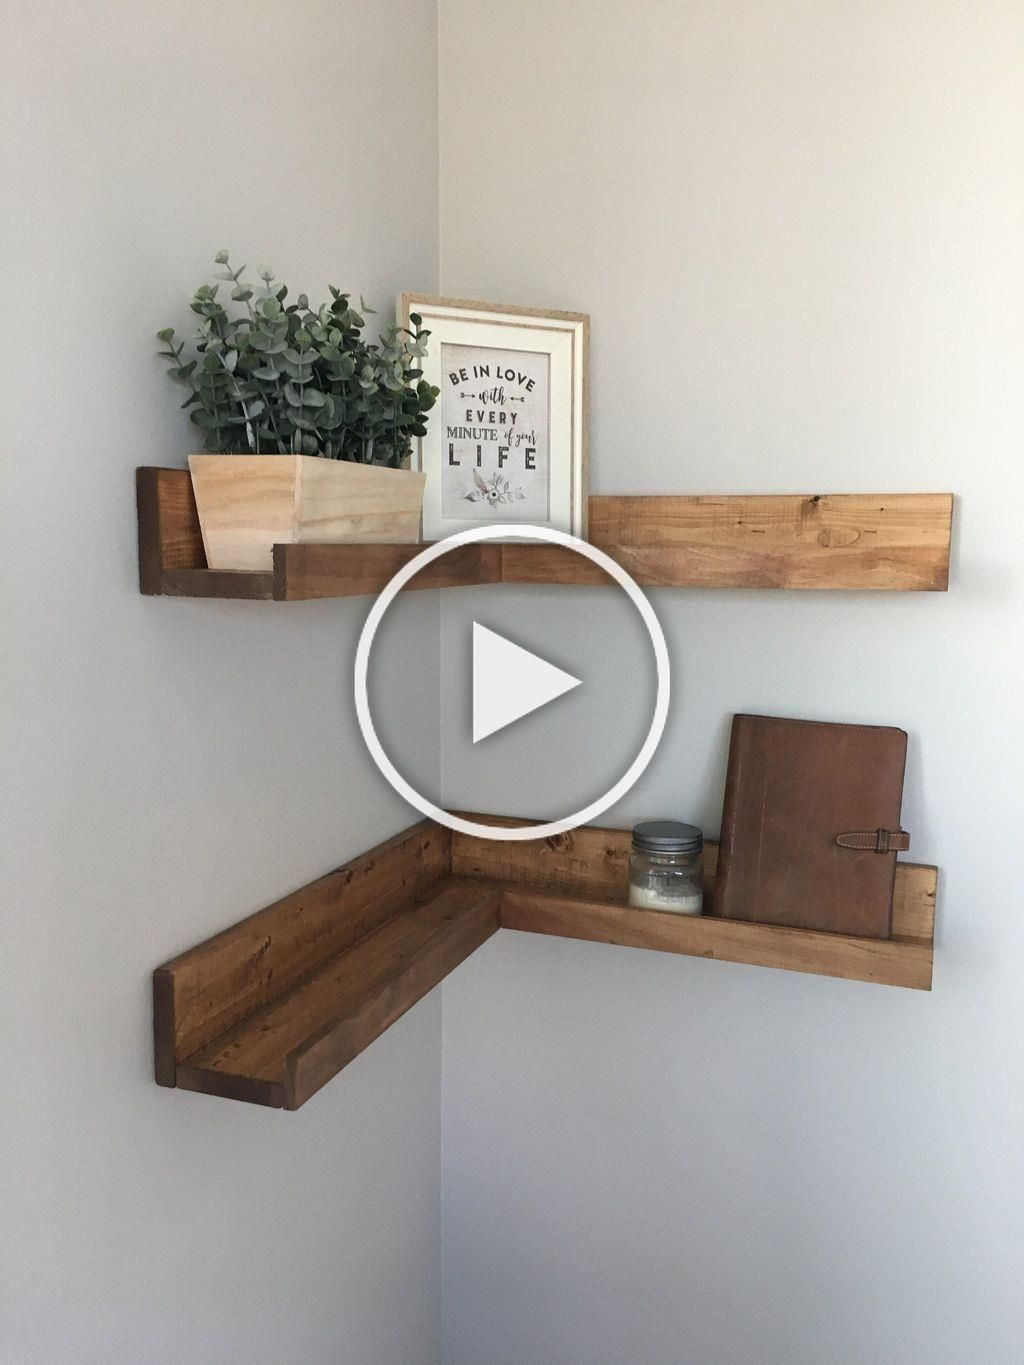 35 Wonderful Corner Floating Shelves Ideas For Your Room Corner Your kitchen is one of the most used rooms in your home and the one you spend most of your